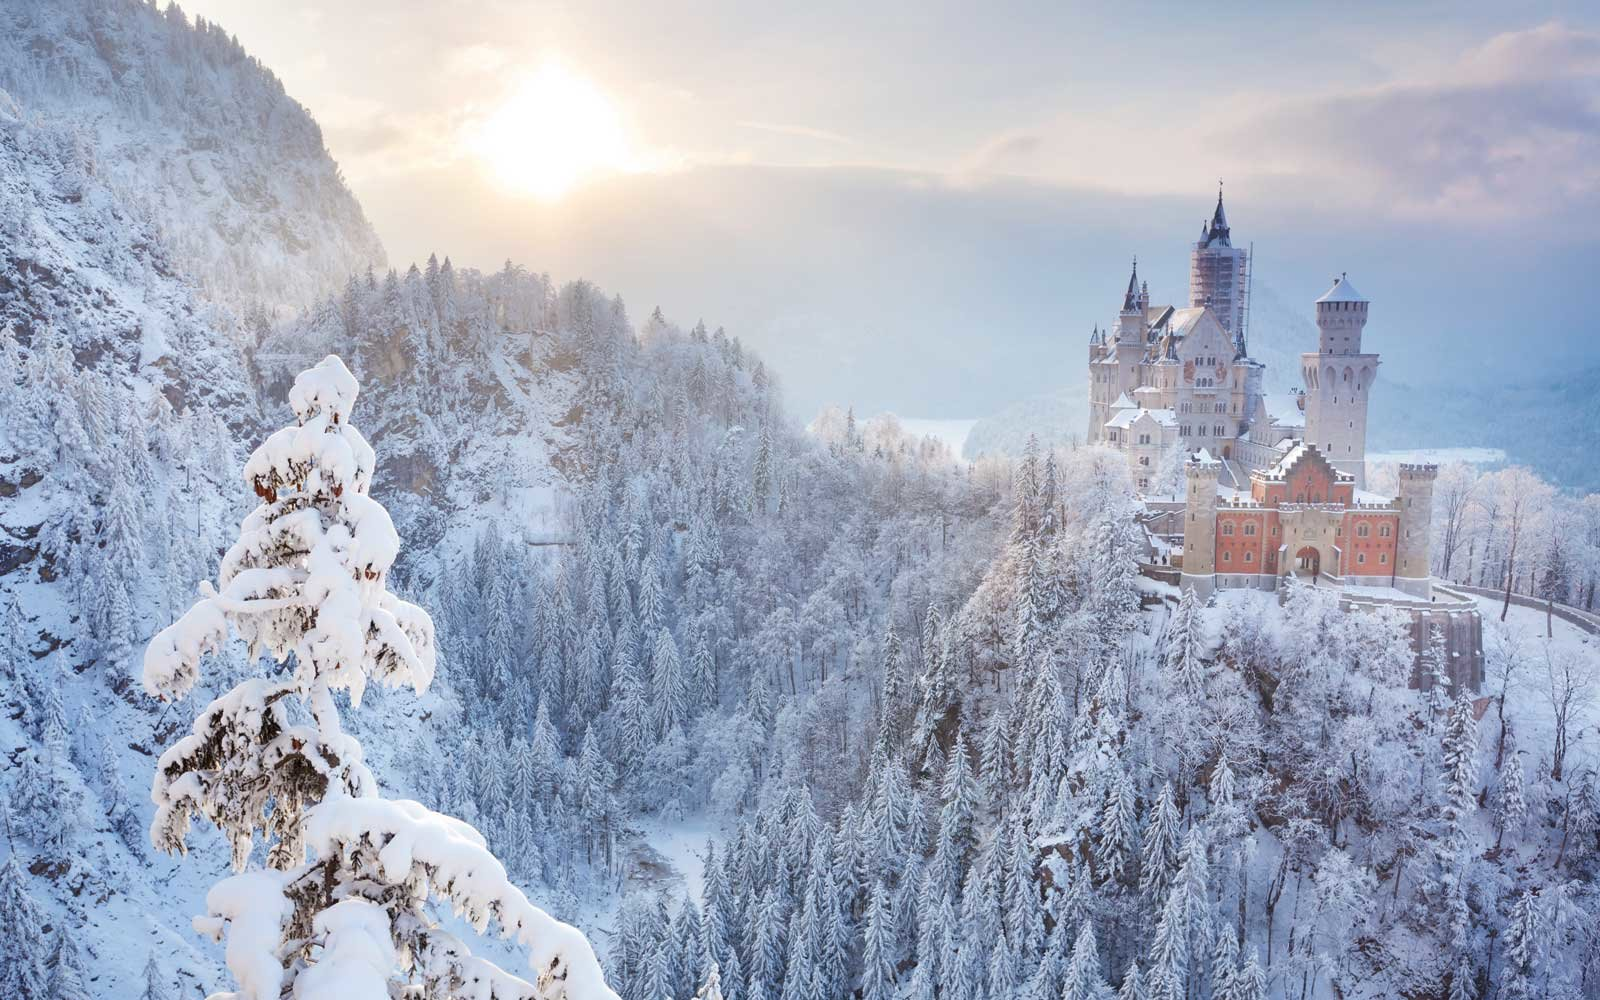 Visit Neuschwanstein Castle in Winter